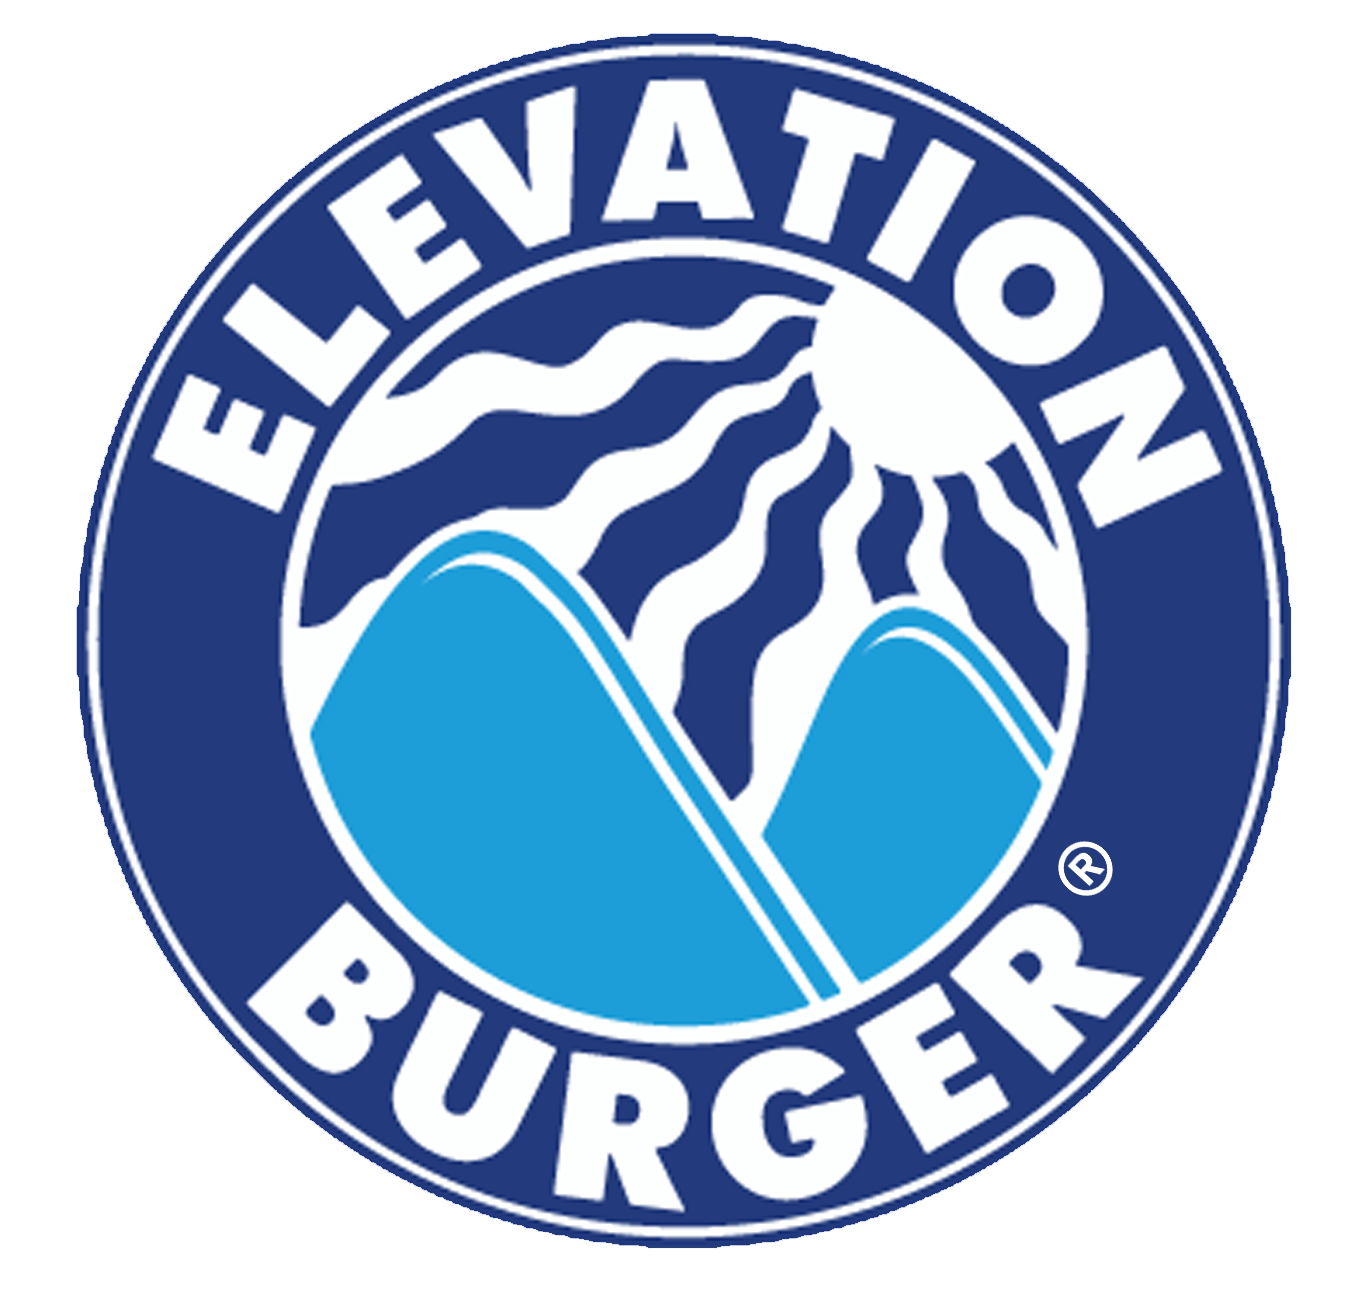 elevationburger.png